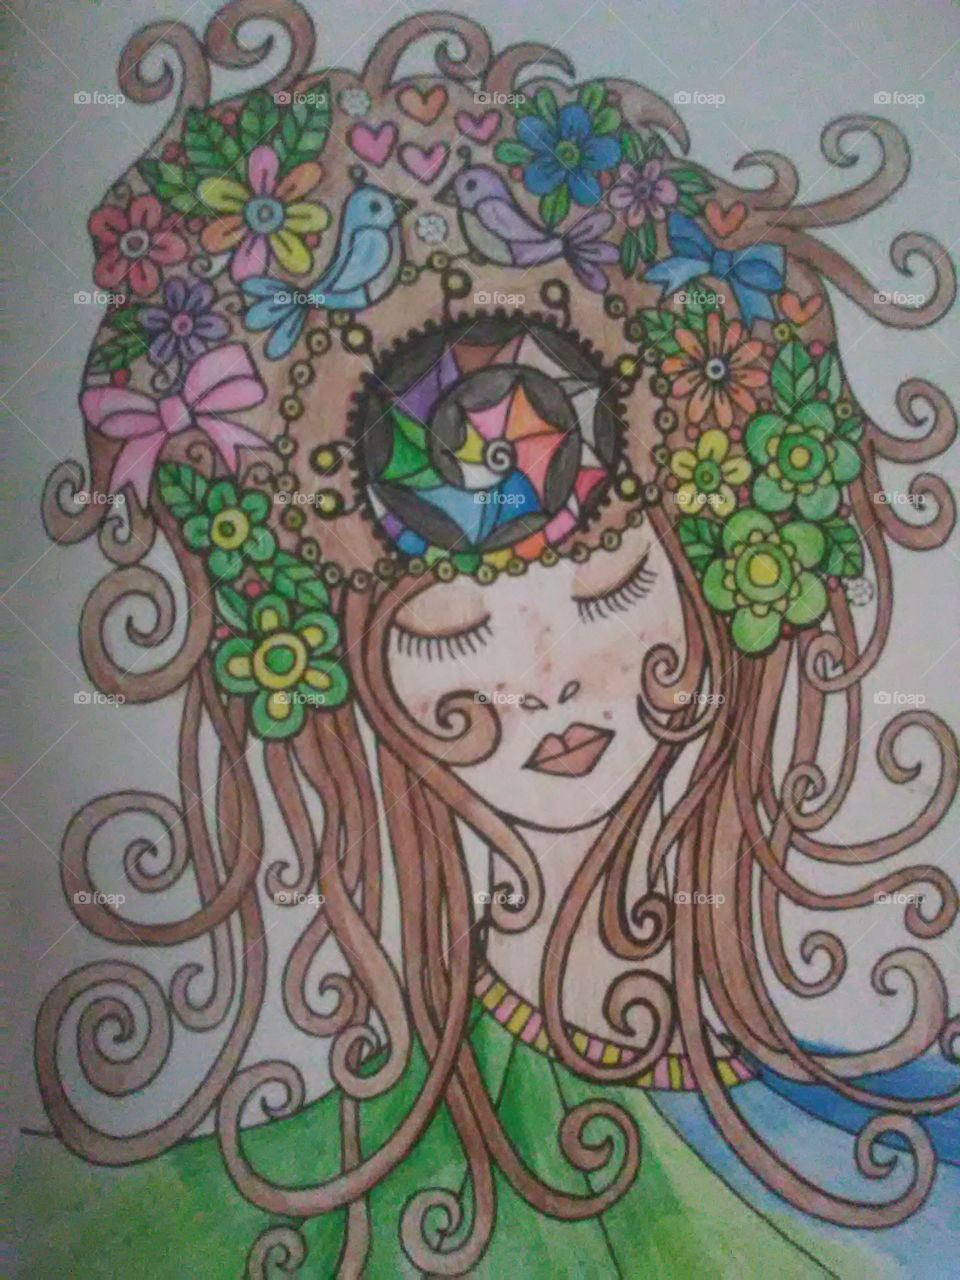 beautiful goddess of nature and love colored by me (Nicole) this free flowing goddess Wii help bring peace into your life.